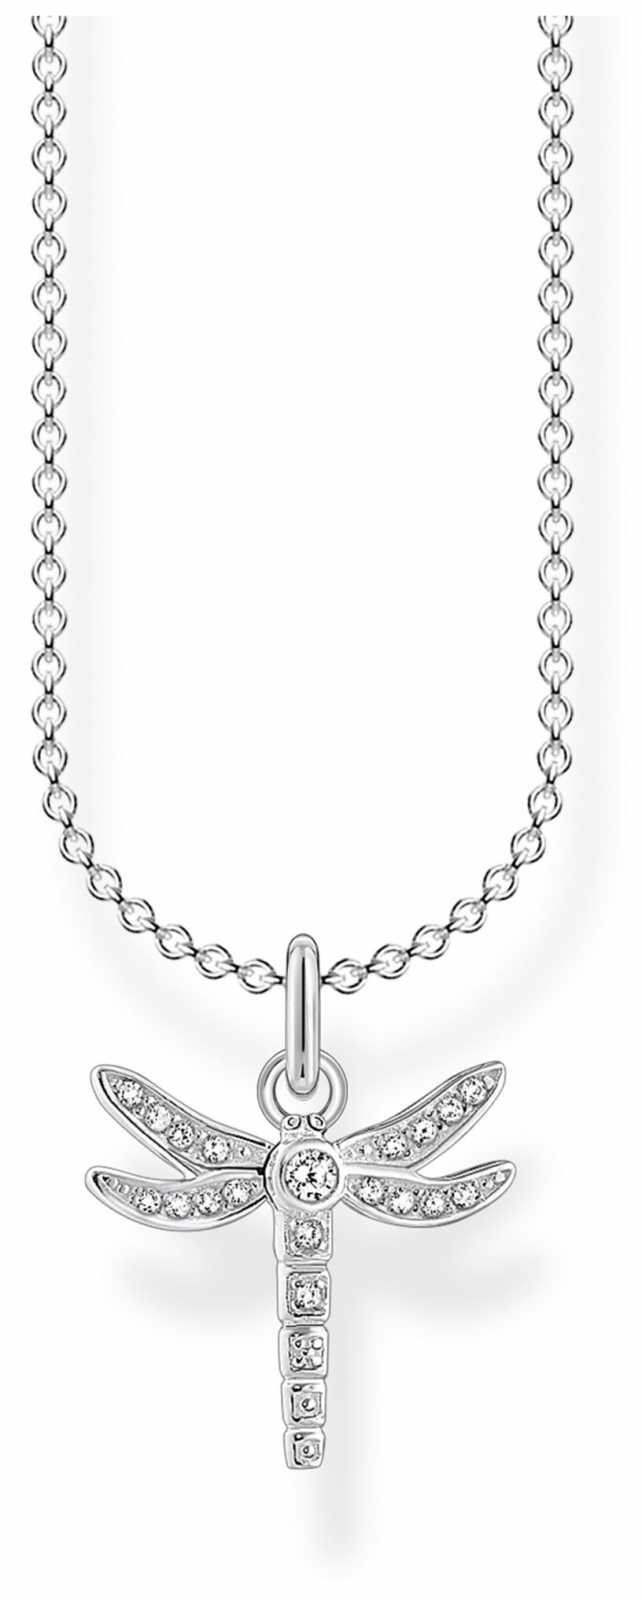 Thomas Sabo Charming | Sterling Silver Pave Dragonfly Necklace | 36-38cm KE2044-051-14-L45V